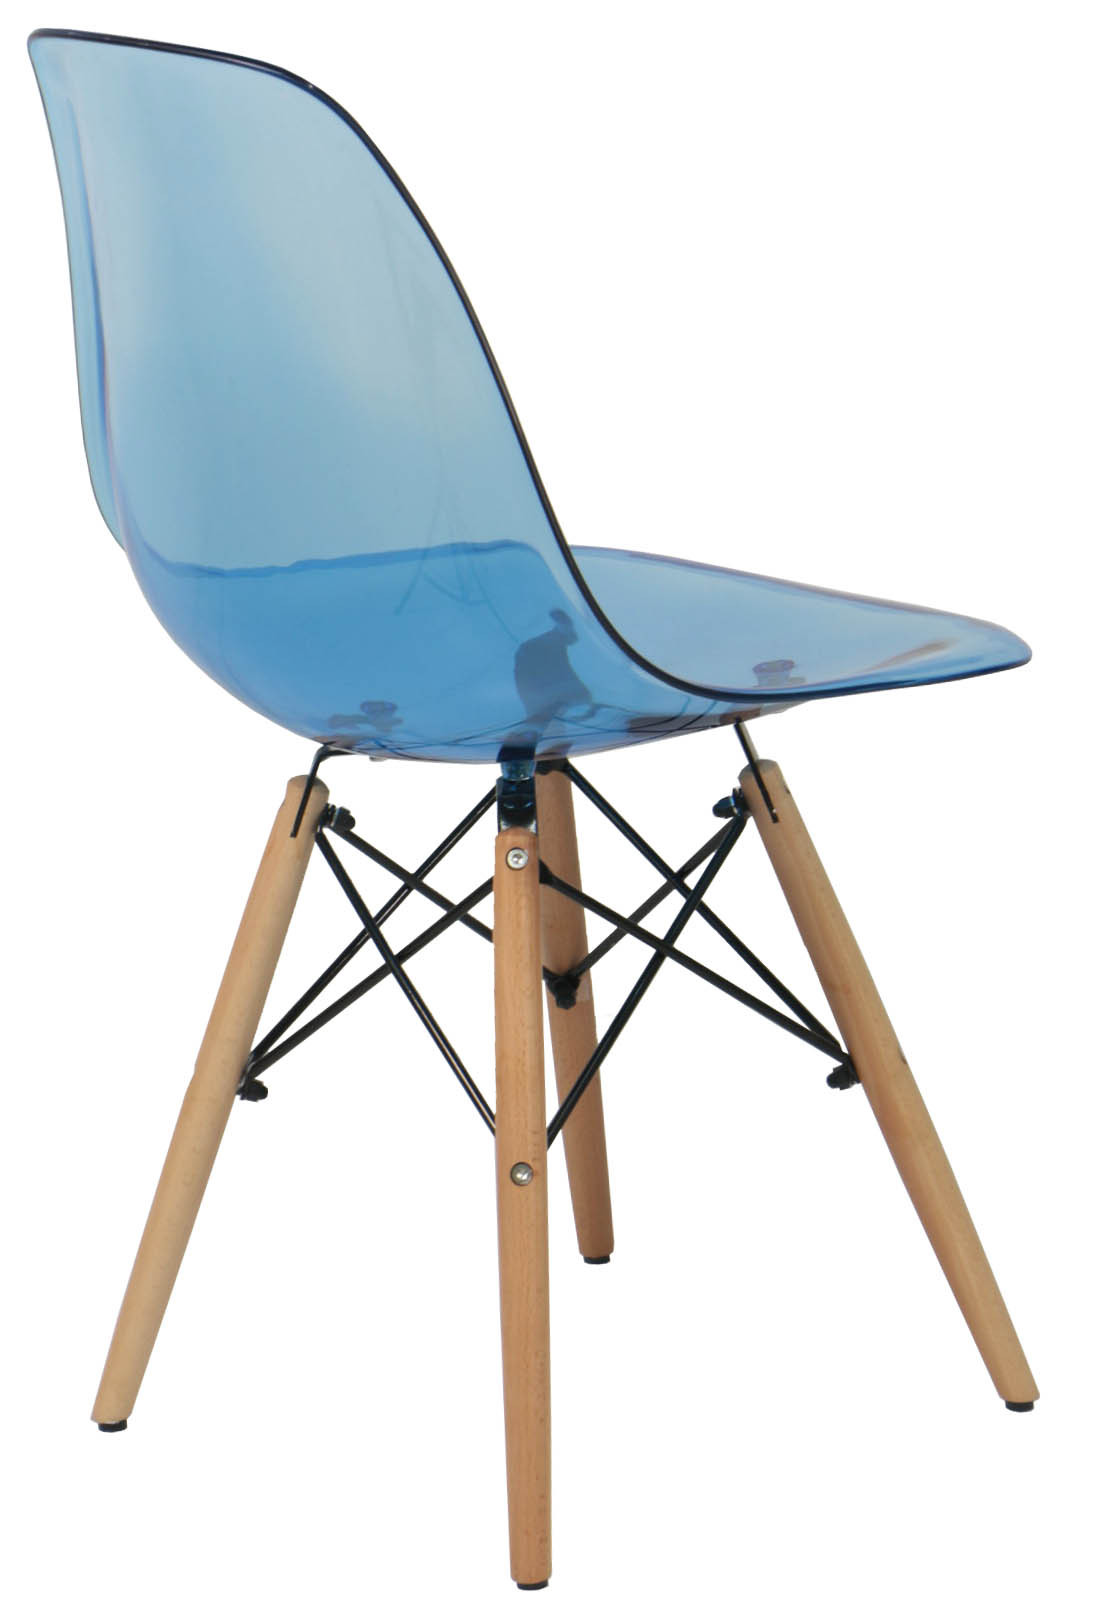 Eames Clear Blue Replica Designer Chair Dining Chairs Dining Room Furnitu